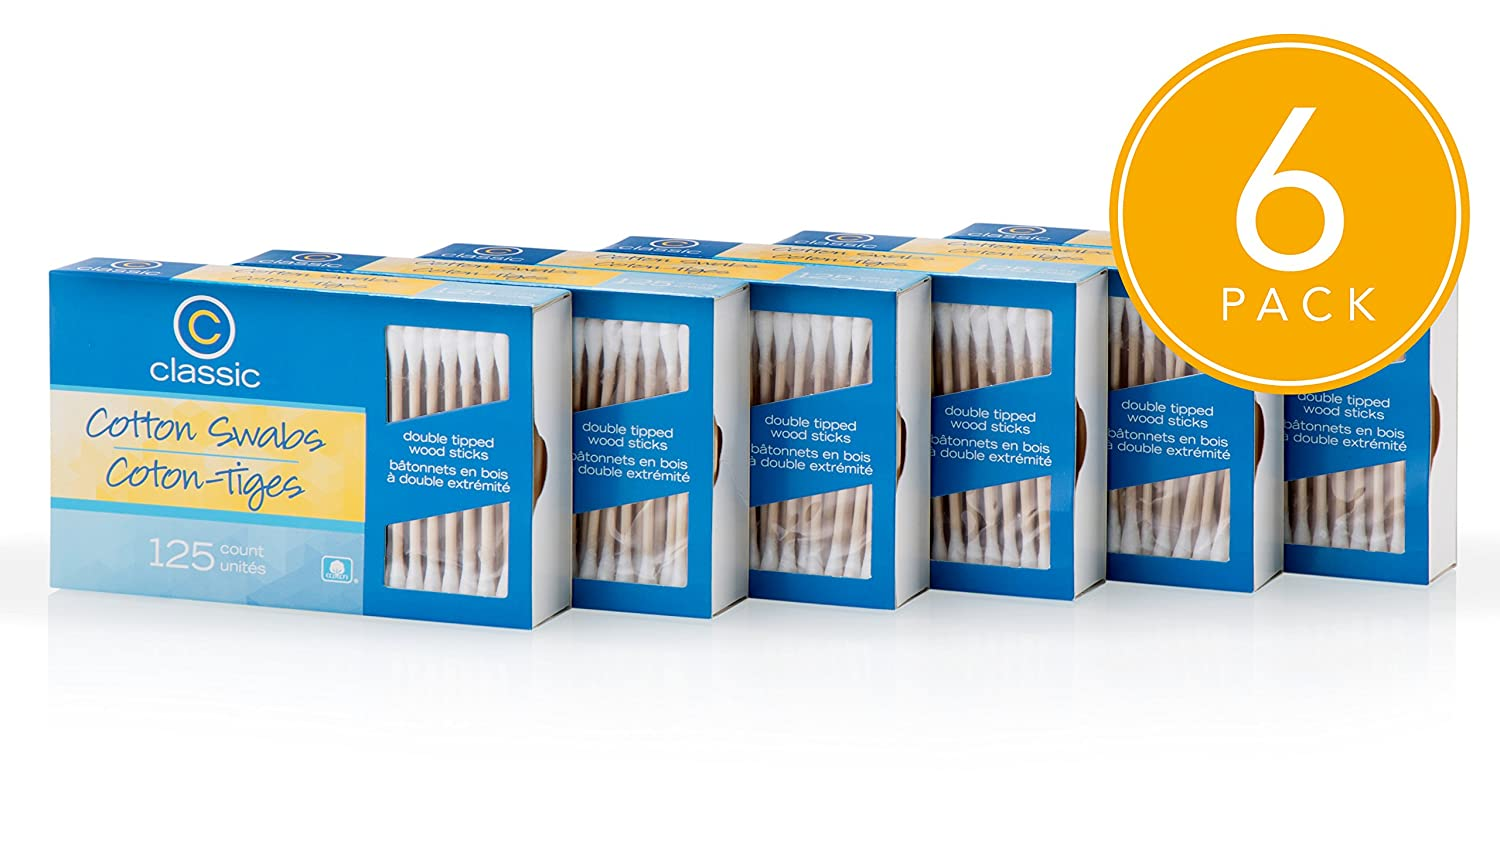 Classic Cotton Swabs Double Tipped Wooden Sticks 125 Count Per Pack (Pack of 6 = 750 Count)